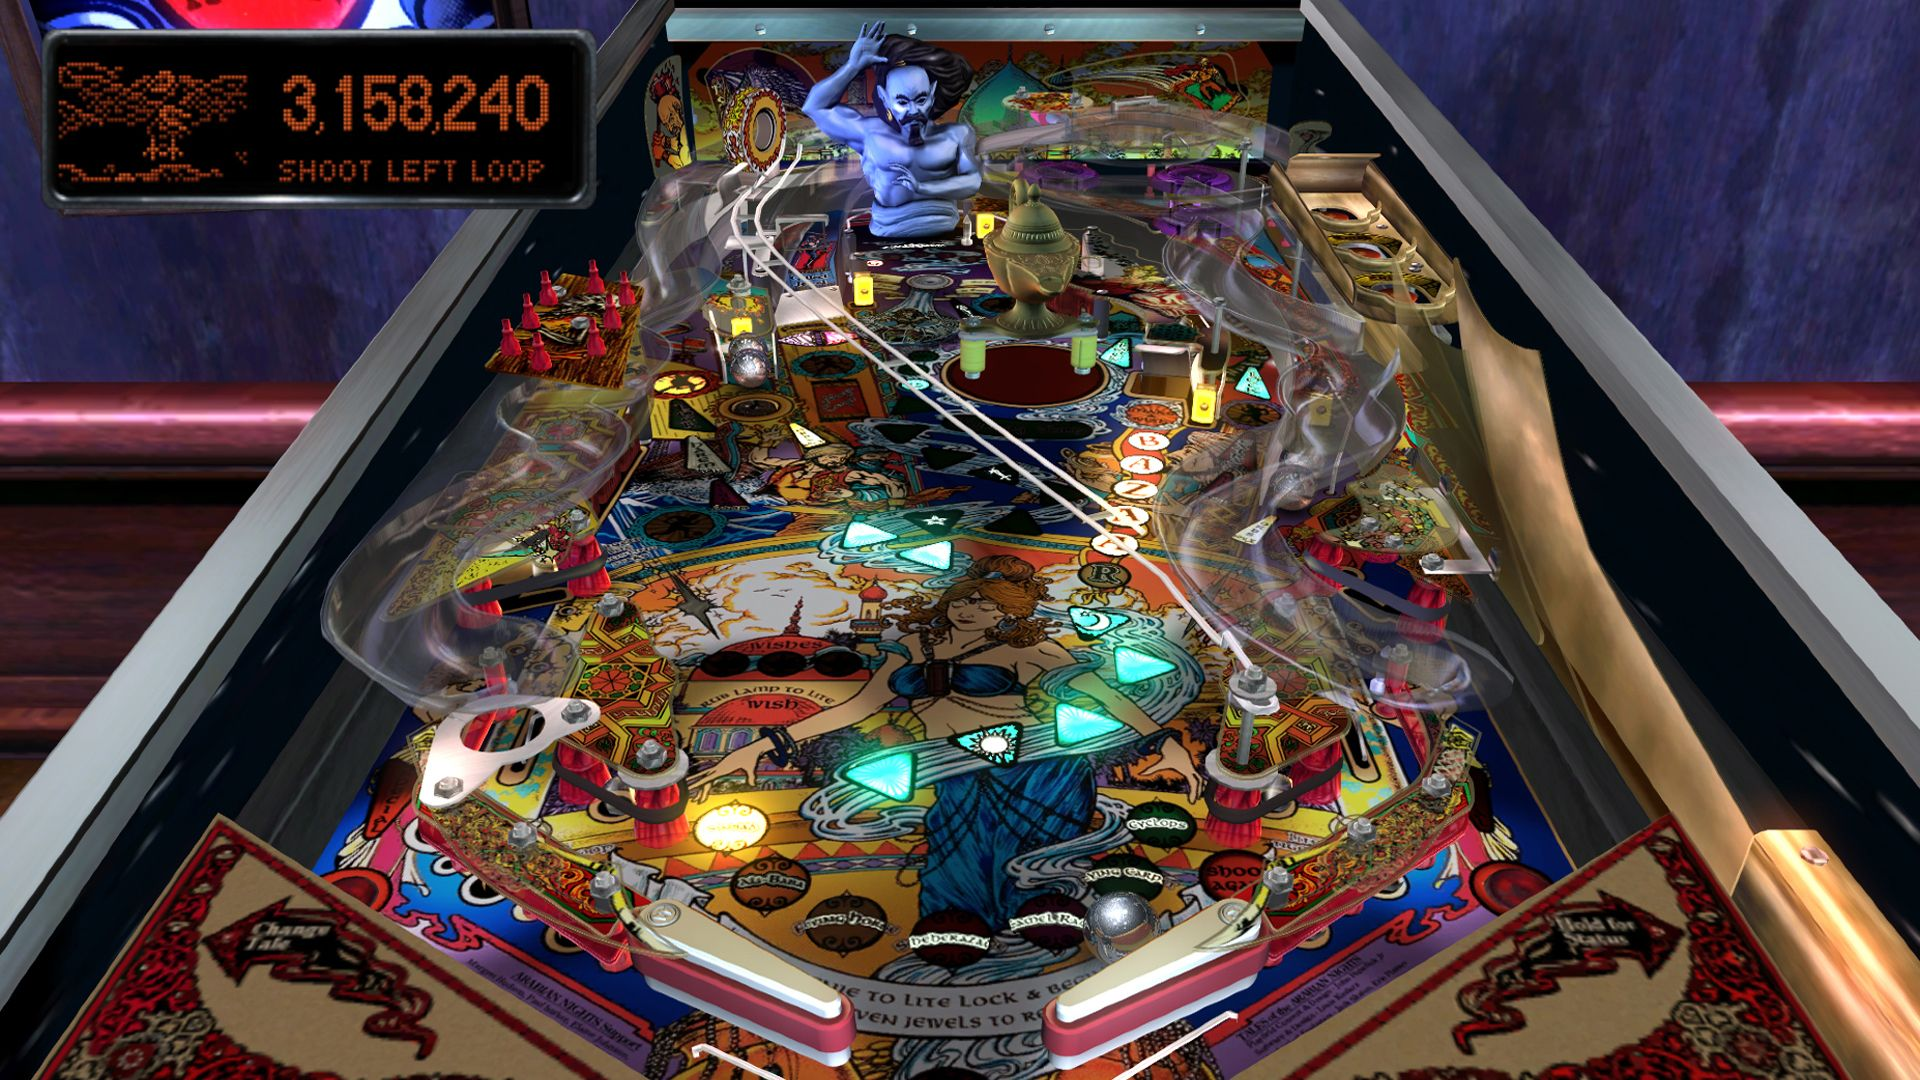 Pinball Arcade Season 2 (PS4) - 3